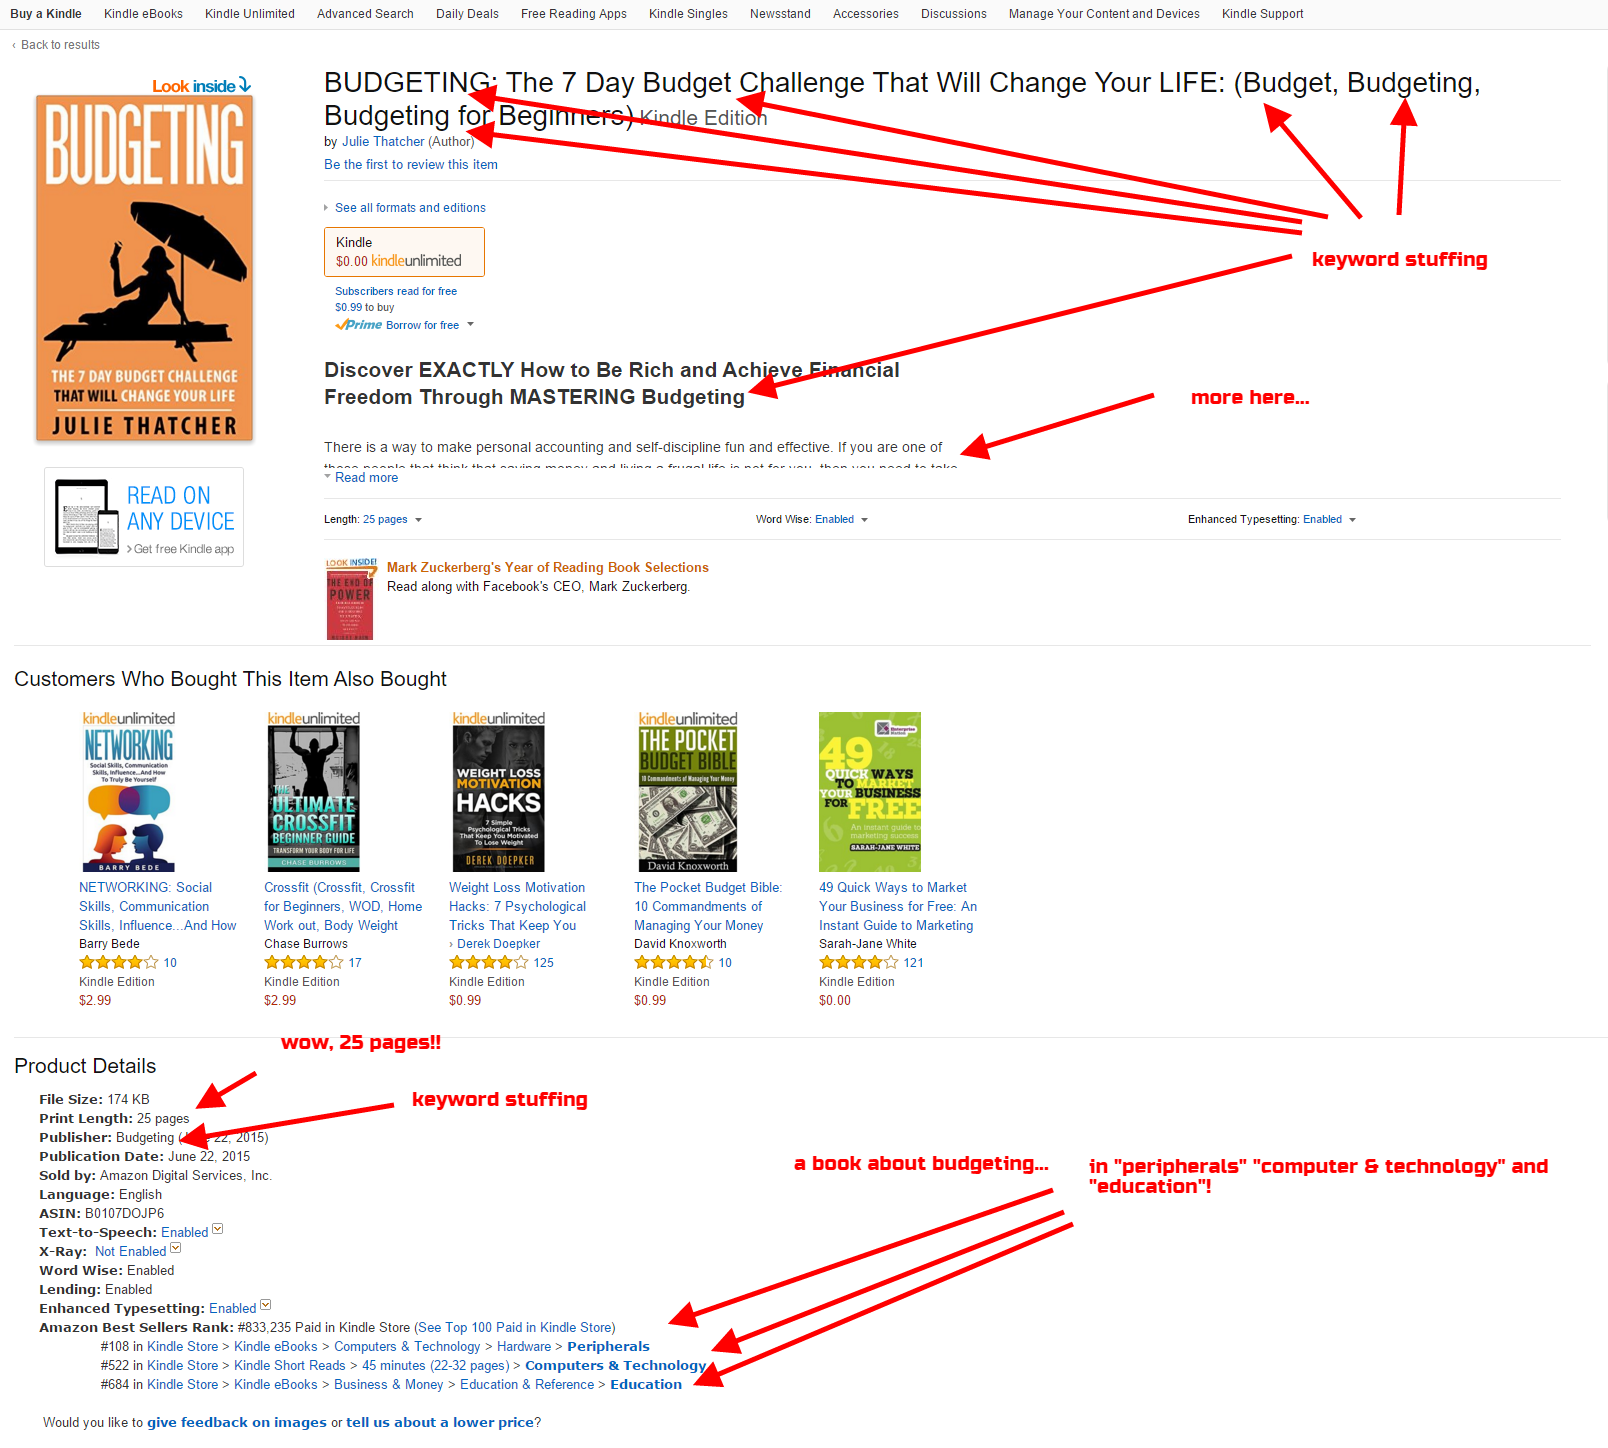 03.1 - Amazon Kindle SEO - scam example - author book example